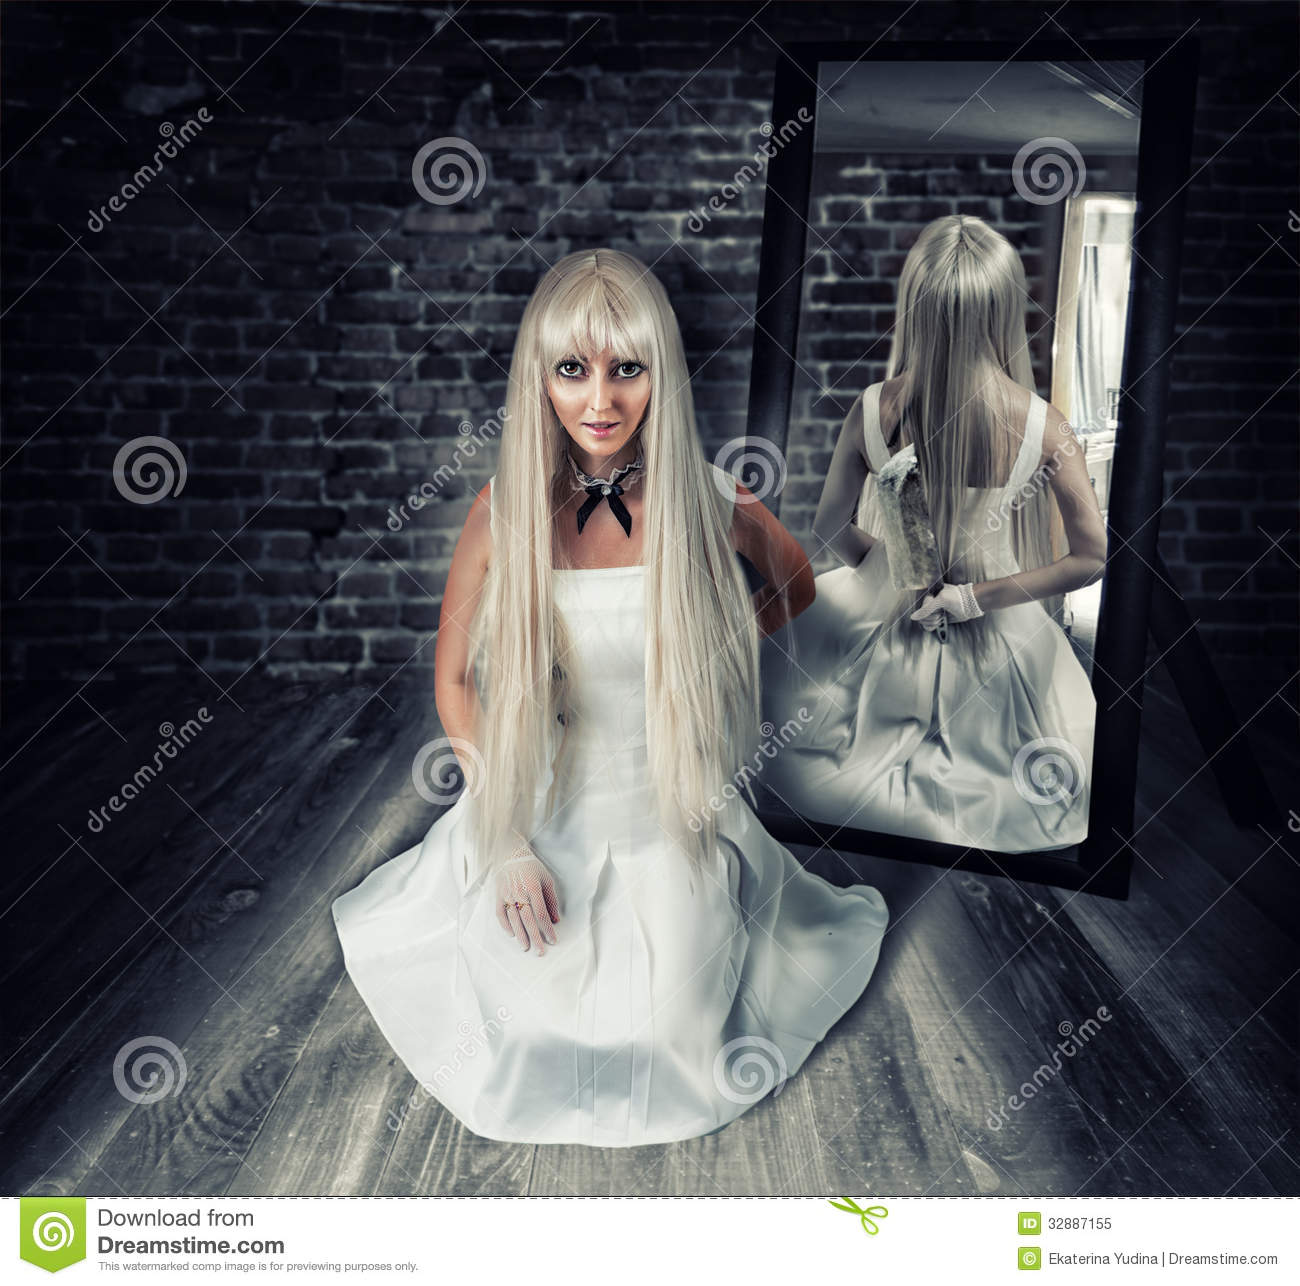 ... Knife In Mirror Reflection Royalty Free Stock Photo - Image: 32887155